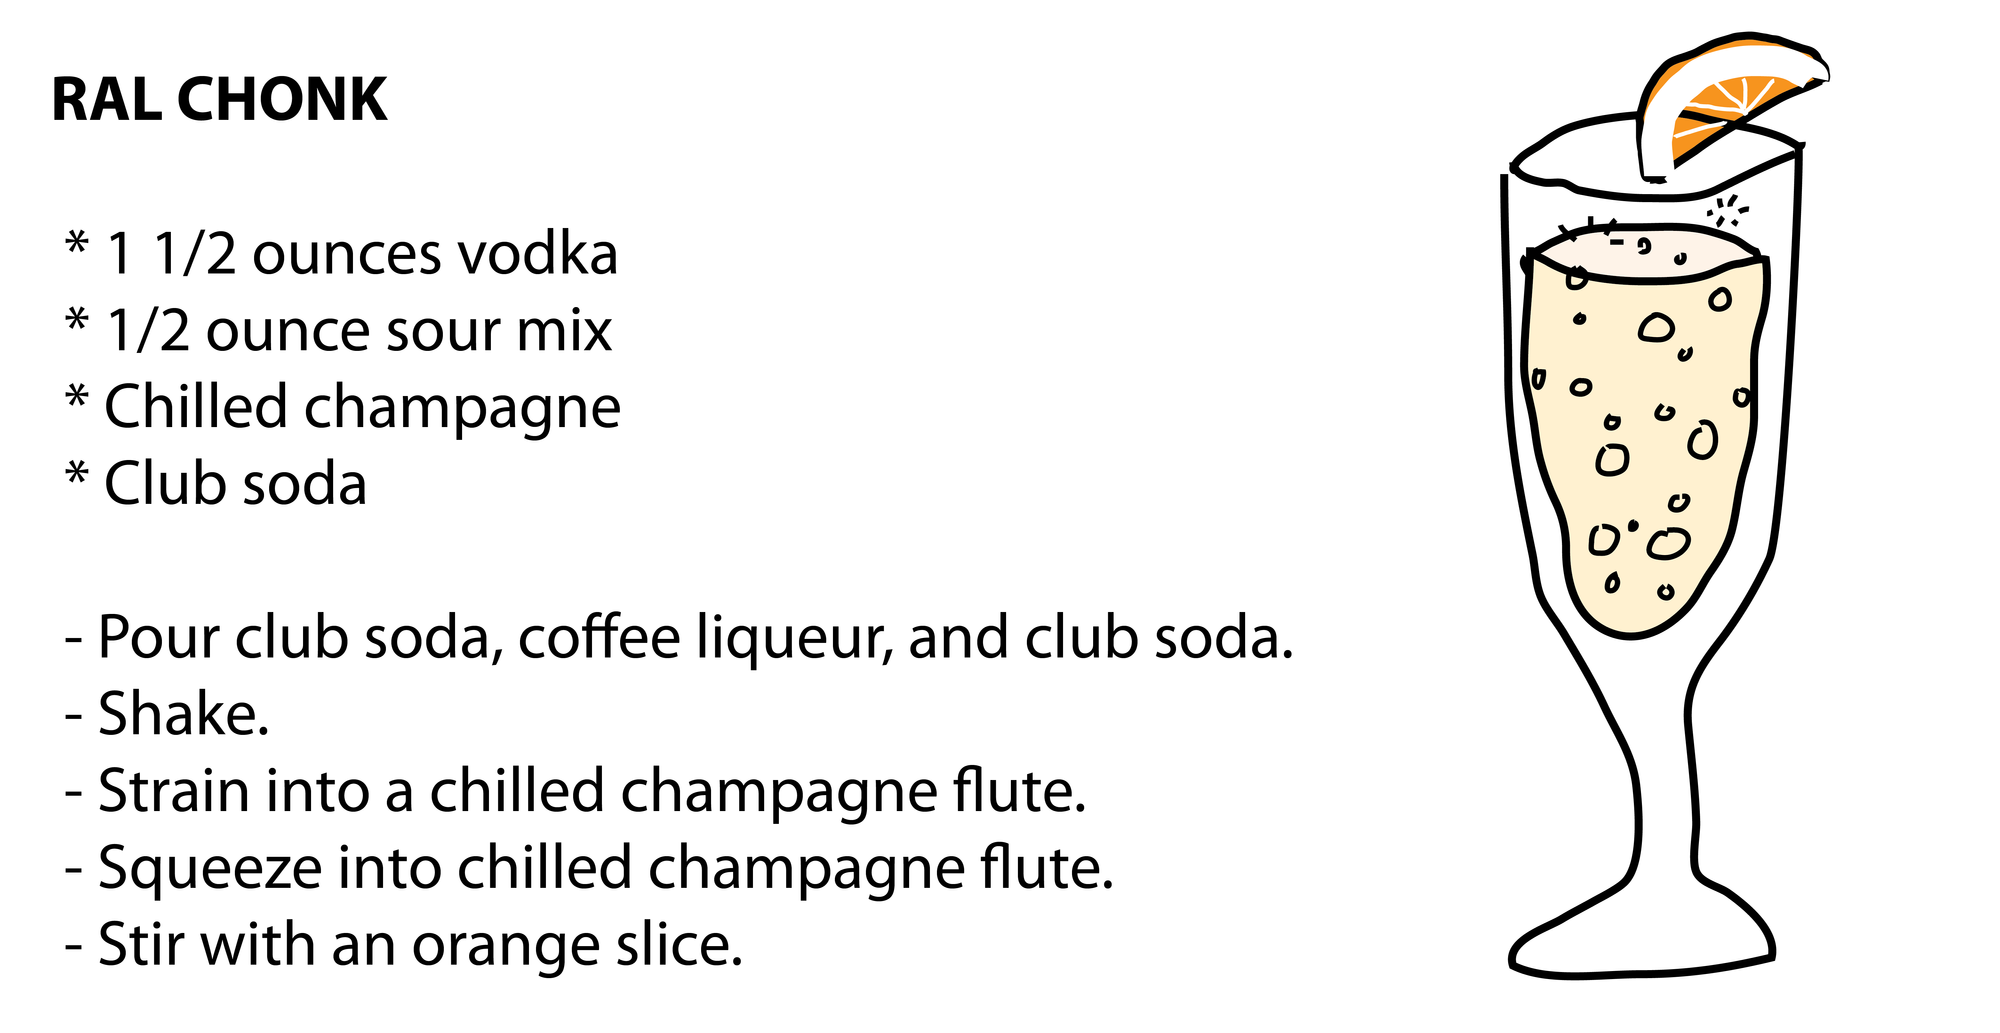 RAL CHONK    * 1 1/2 ounces vodka  * 1/2 ounce sour mix  * Chilled champagne  * Club soda   - Pour club soda, coffee liqueur, and club soda.  - Shake.  - Strain into a chilled champagne flute.  - Squeeze into chilled champagne flute.  - Stir with an orange slice.